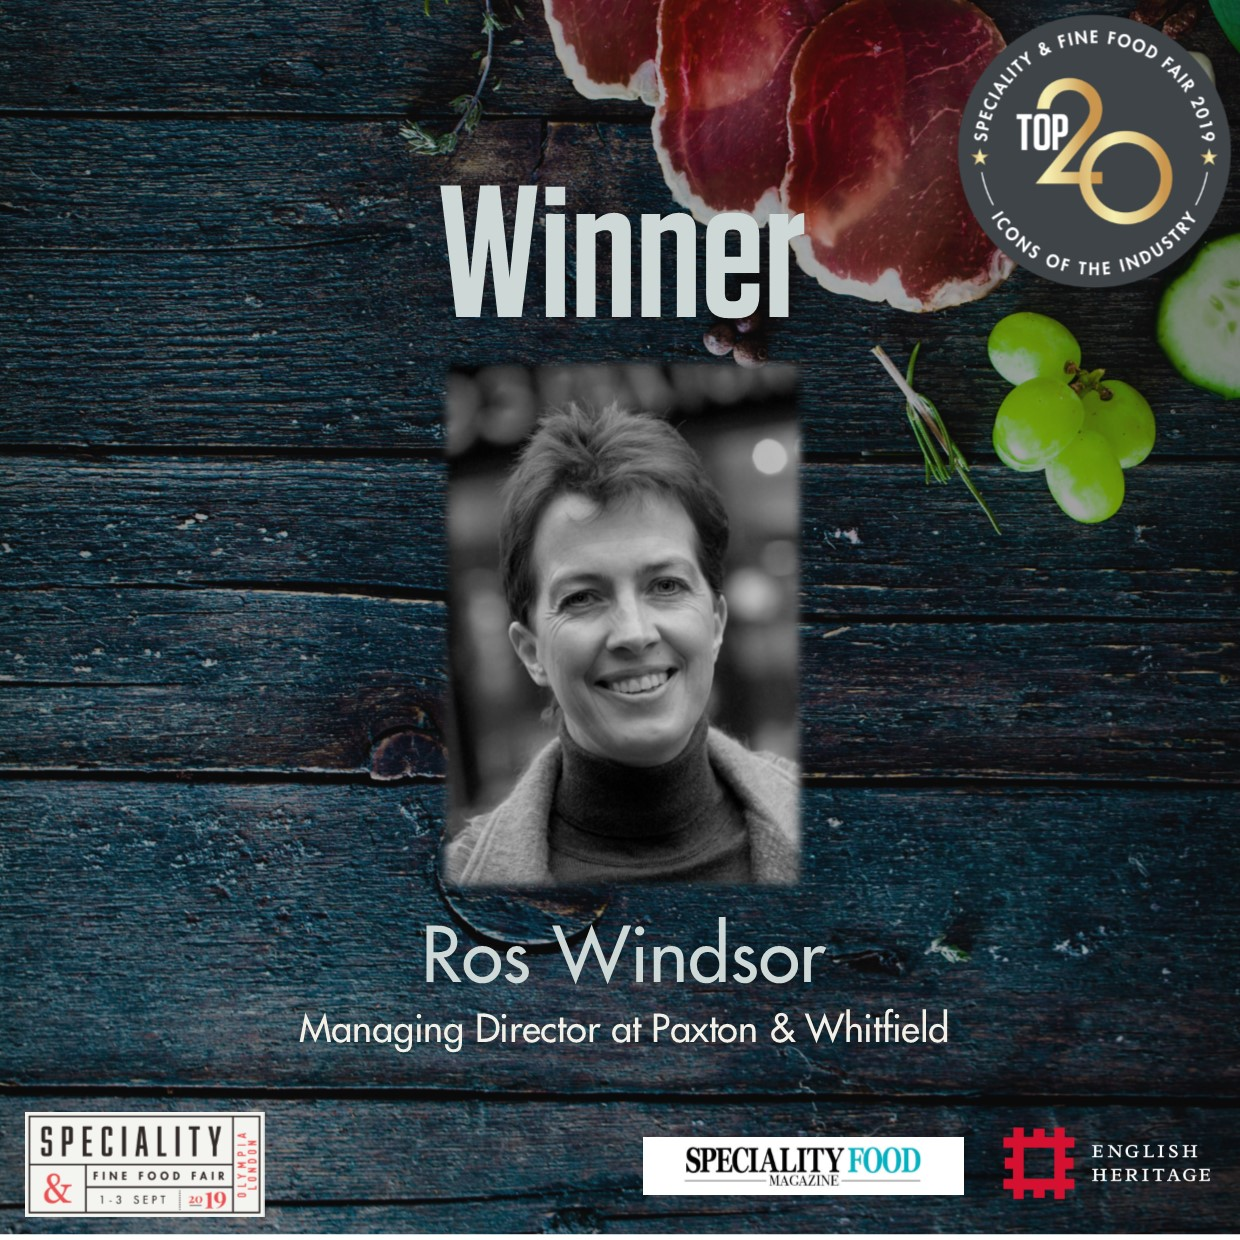 Ros-Windsor-Winner-Icon-of-the-Industry